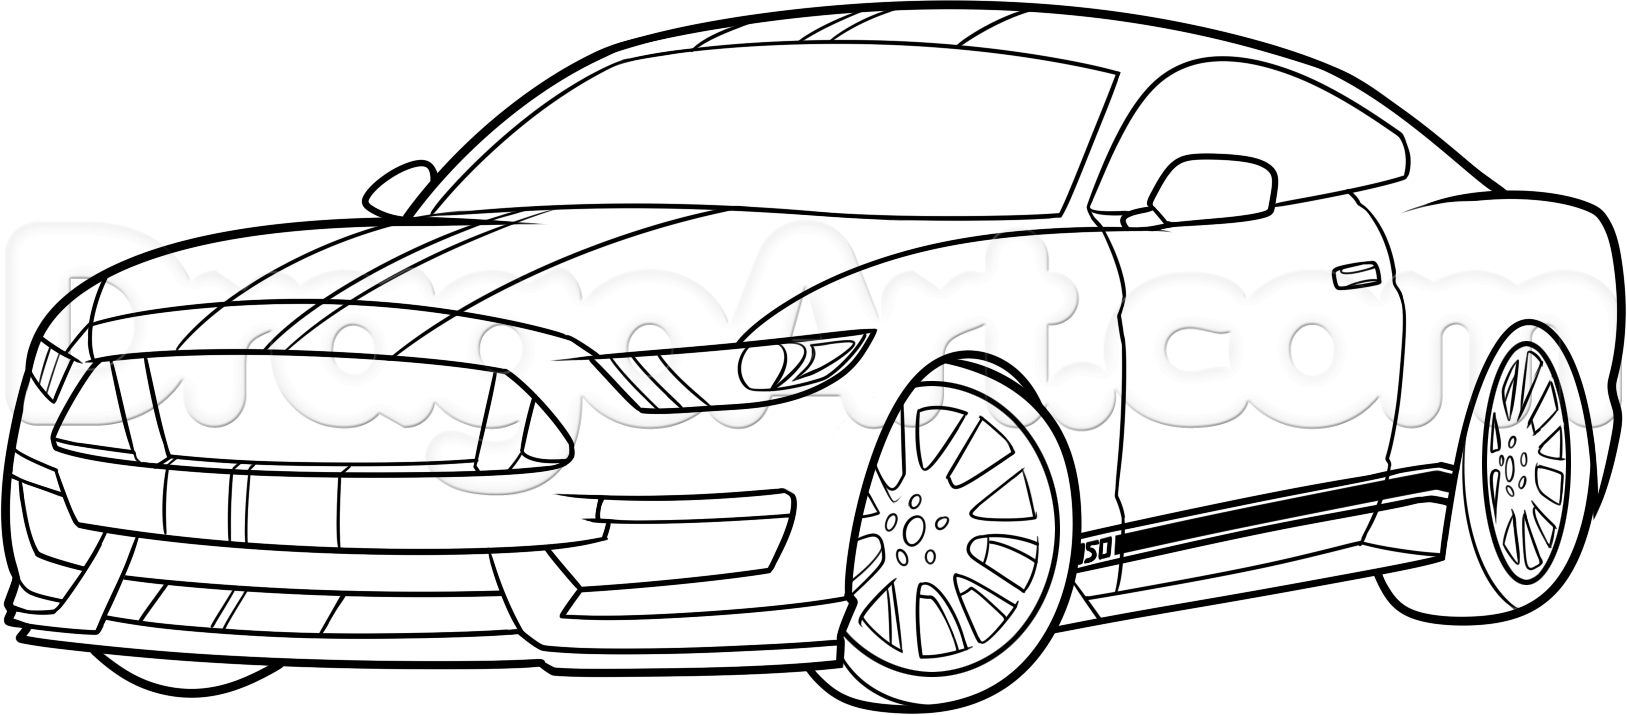 How To Draw A Ford Mustang Car Step By Step 1 In 2020 Ford Mustang Car Mustang Cars Ford Mustang Shelby Gt500